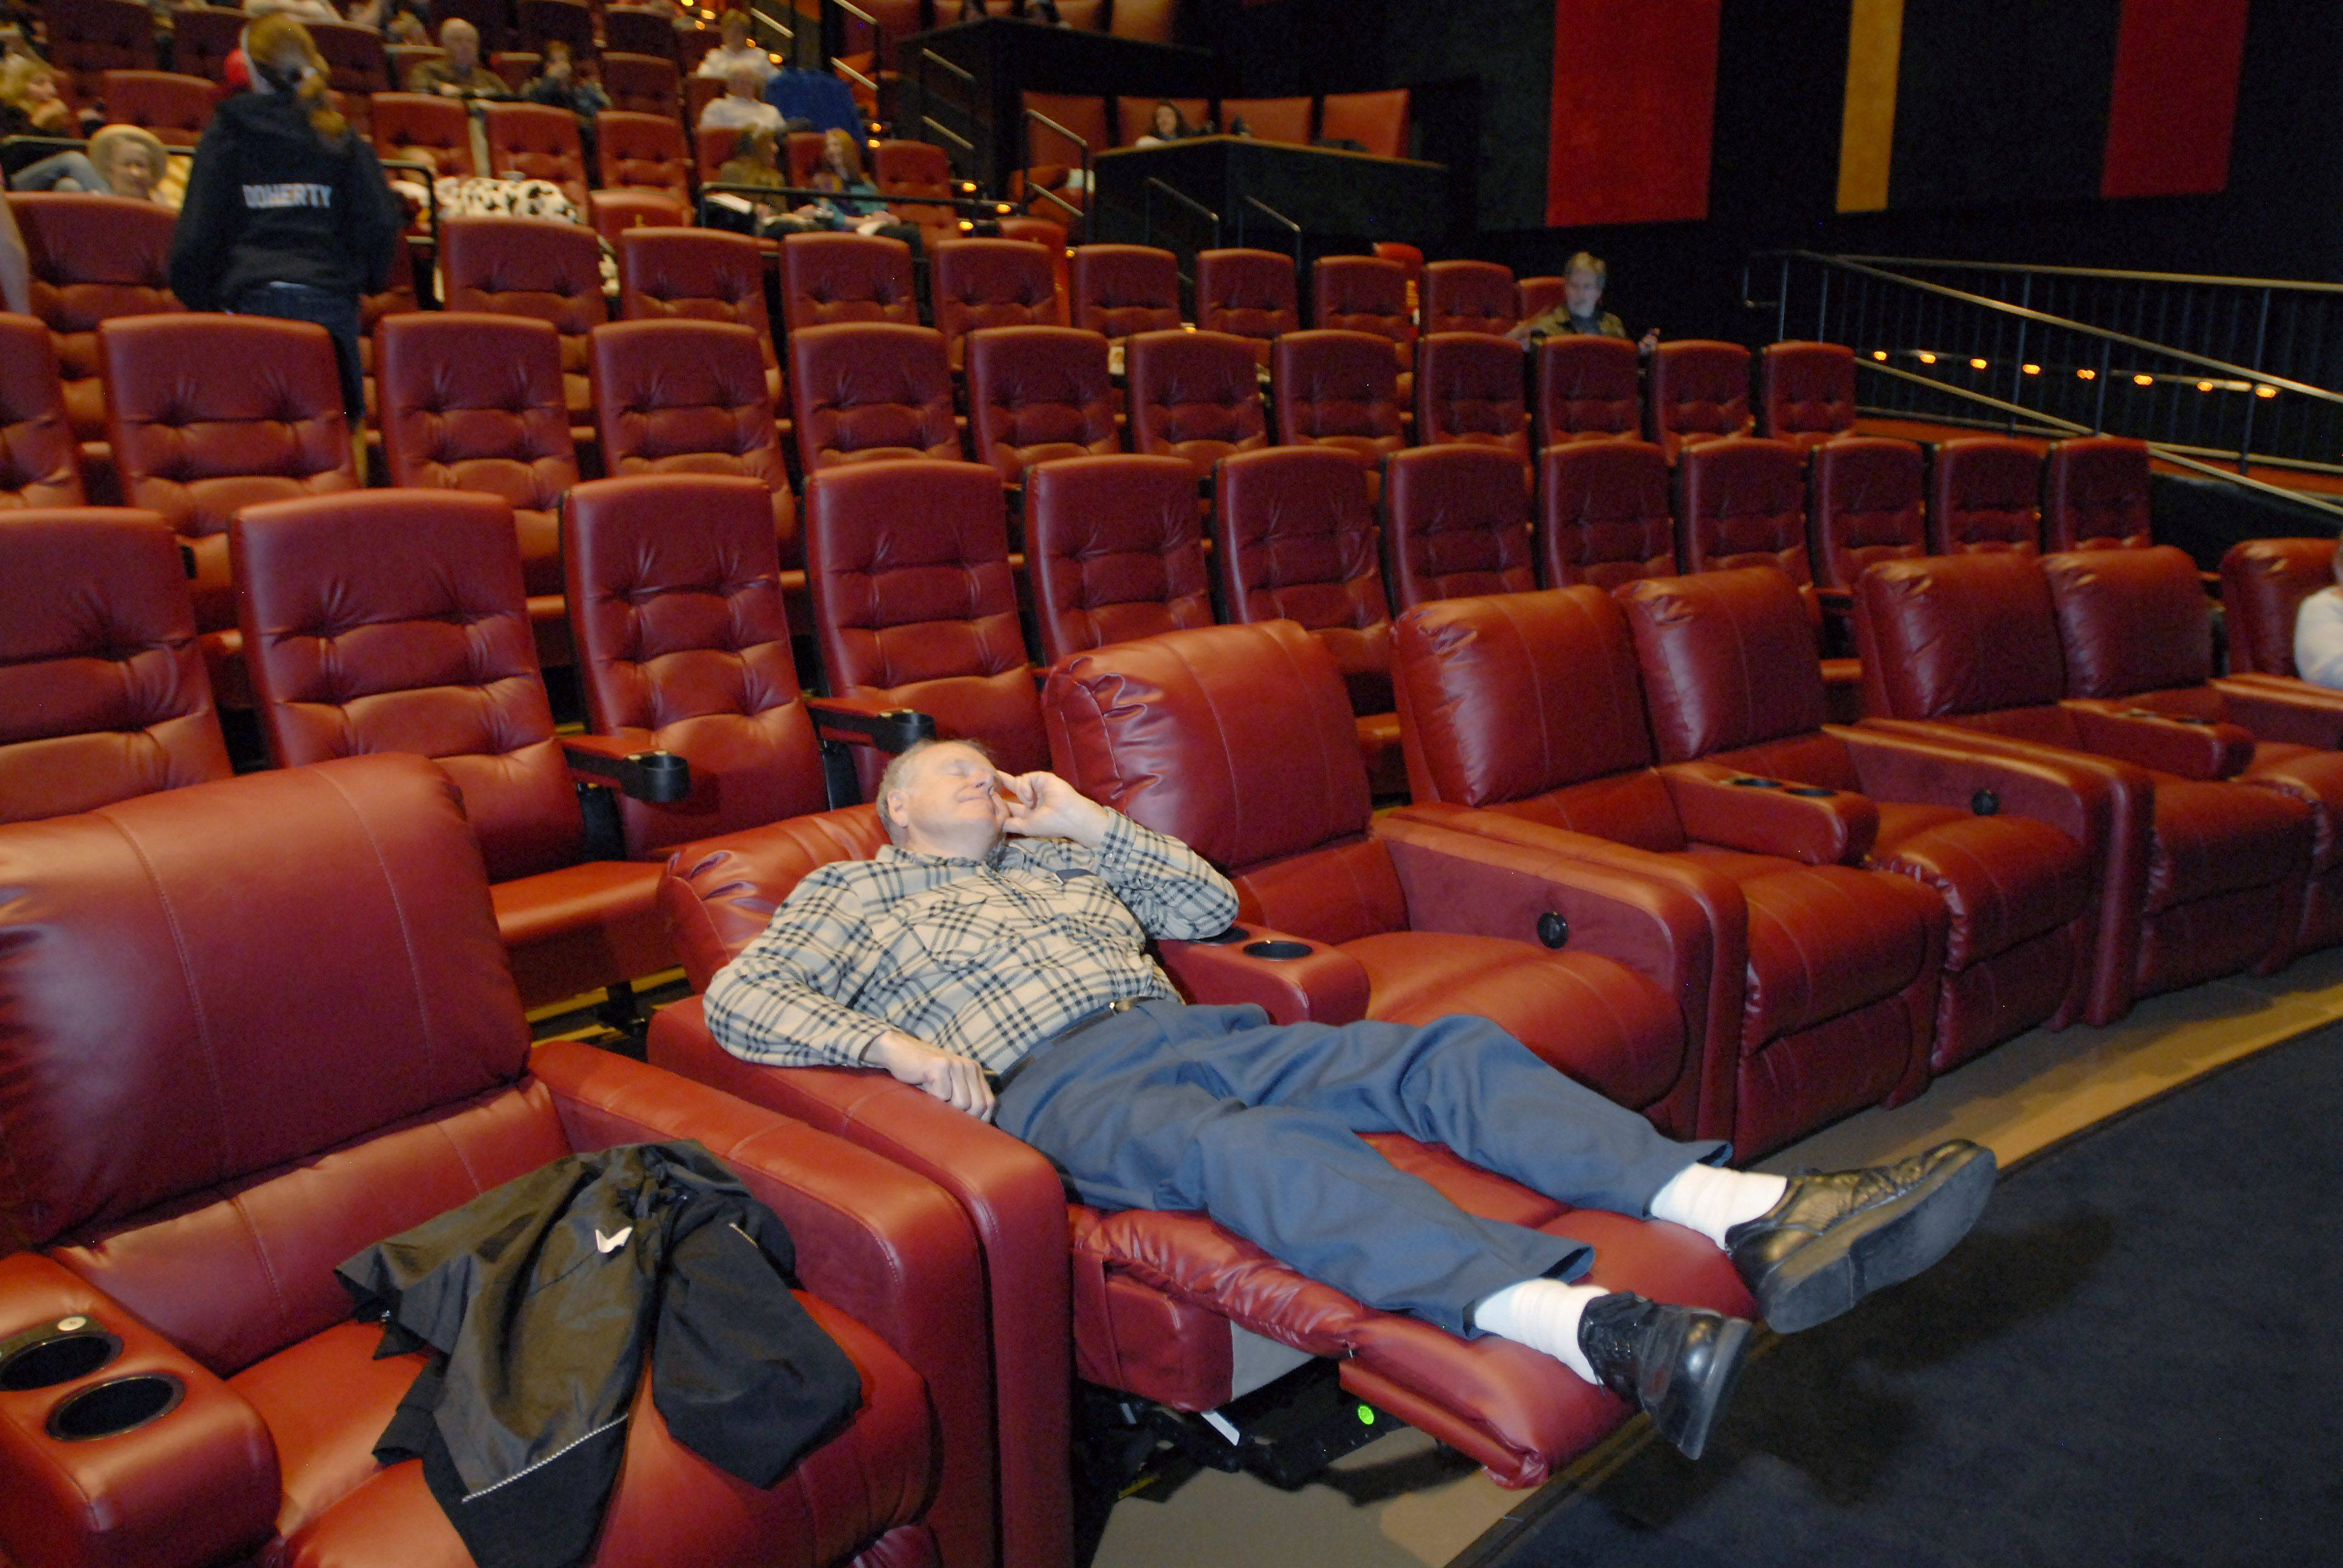 Randhurst Amc Theaters Open With Royal Fanfare